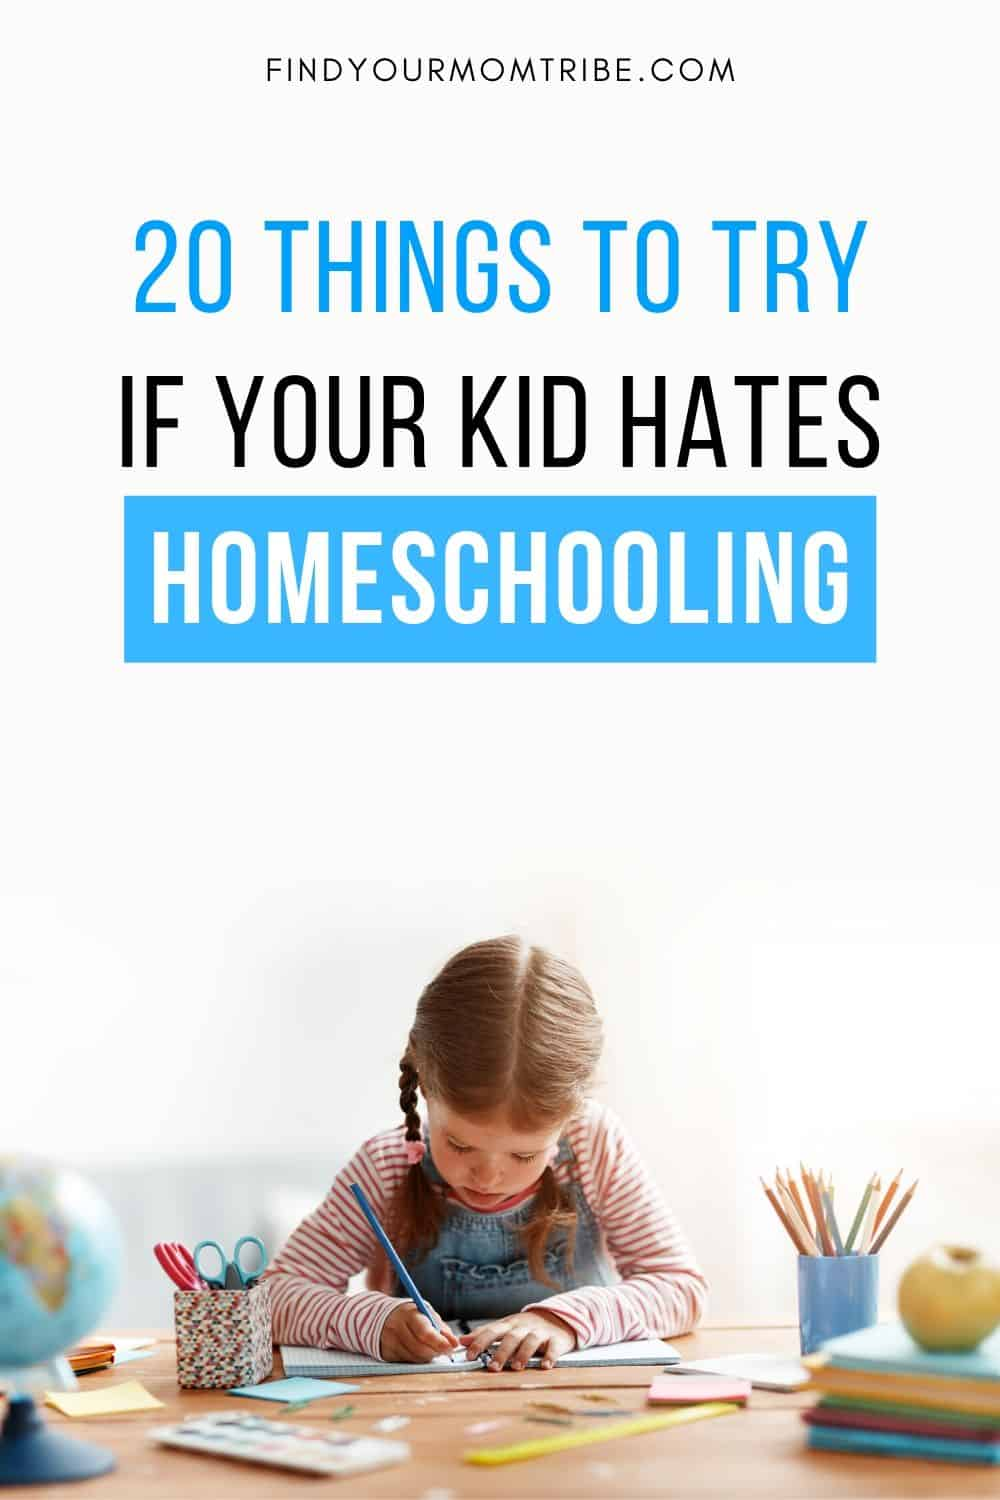 Pinterest 20 Things to Try if Your Kid Hates Homeschooling